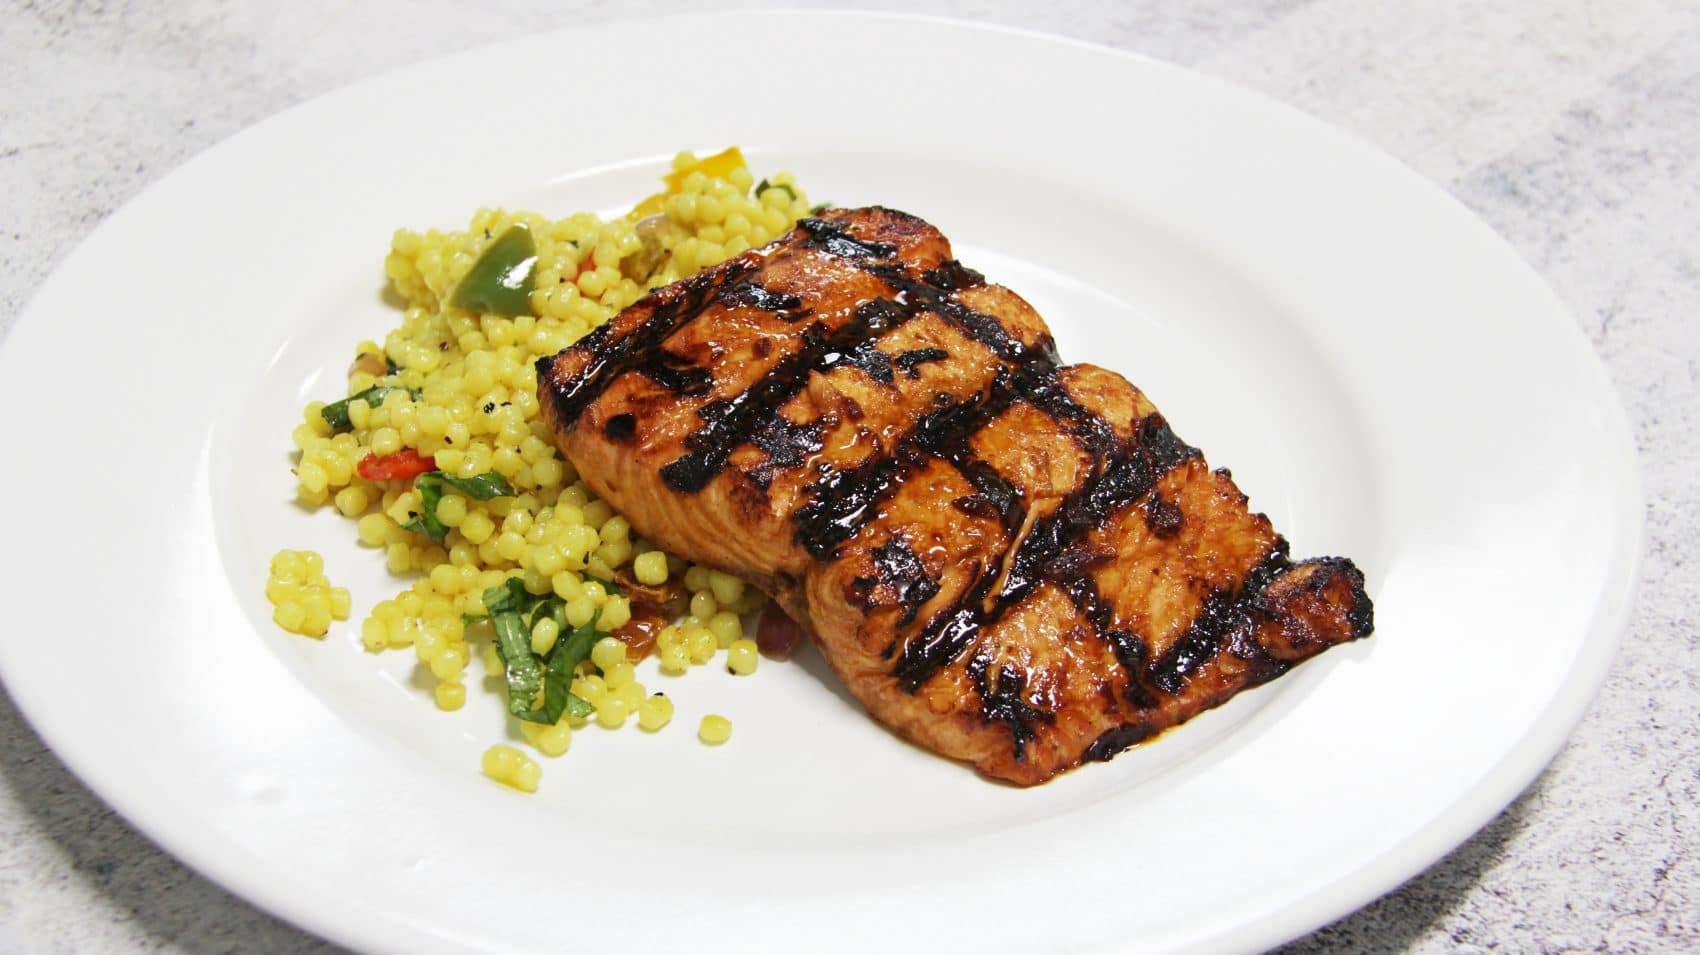 Salmon – Sweet & Savory Salmon with Couscous Salad